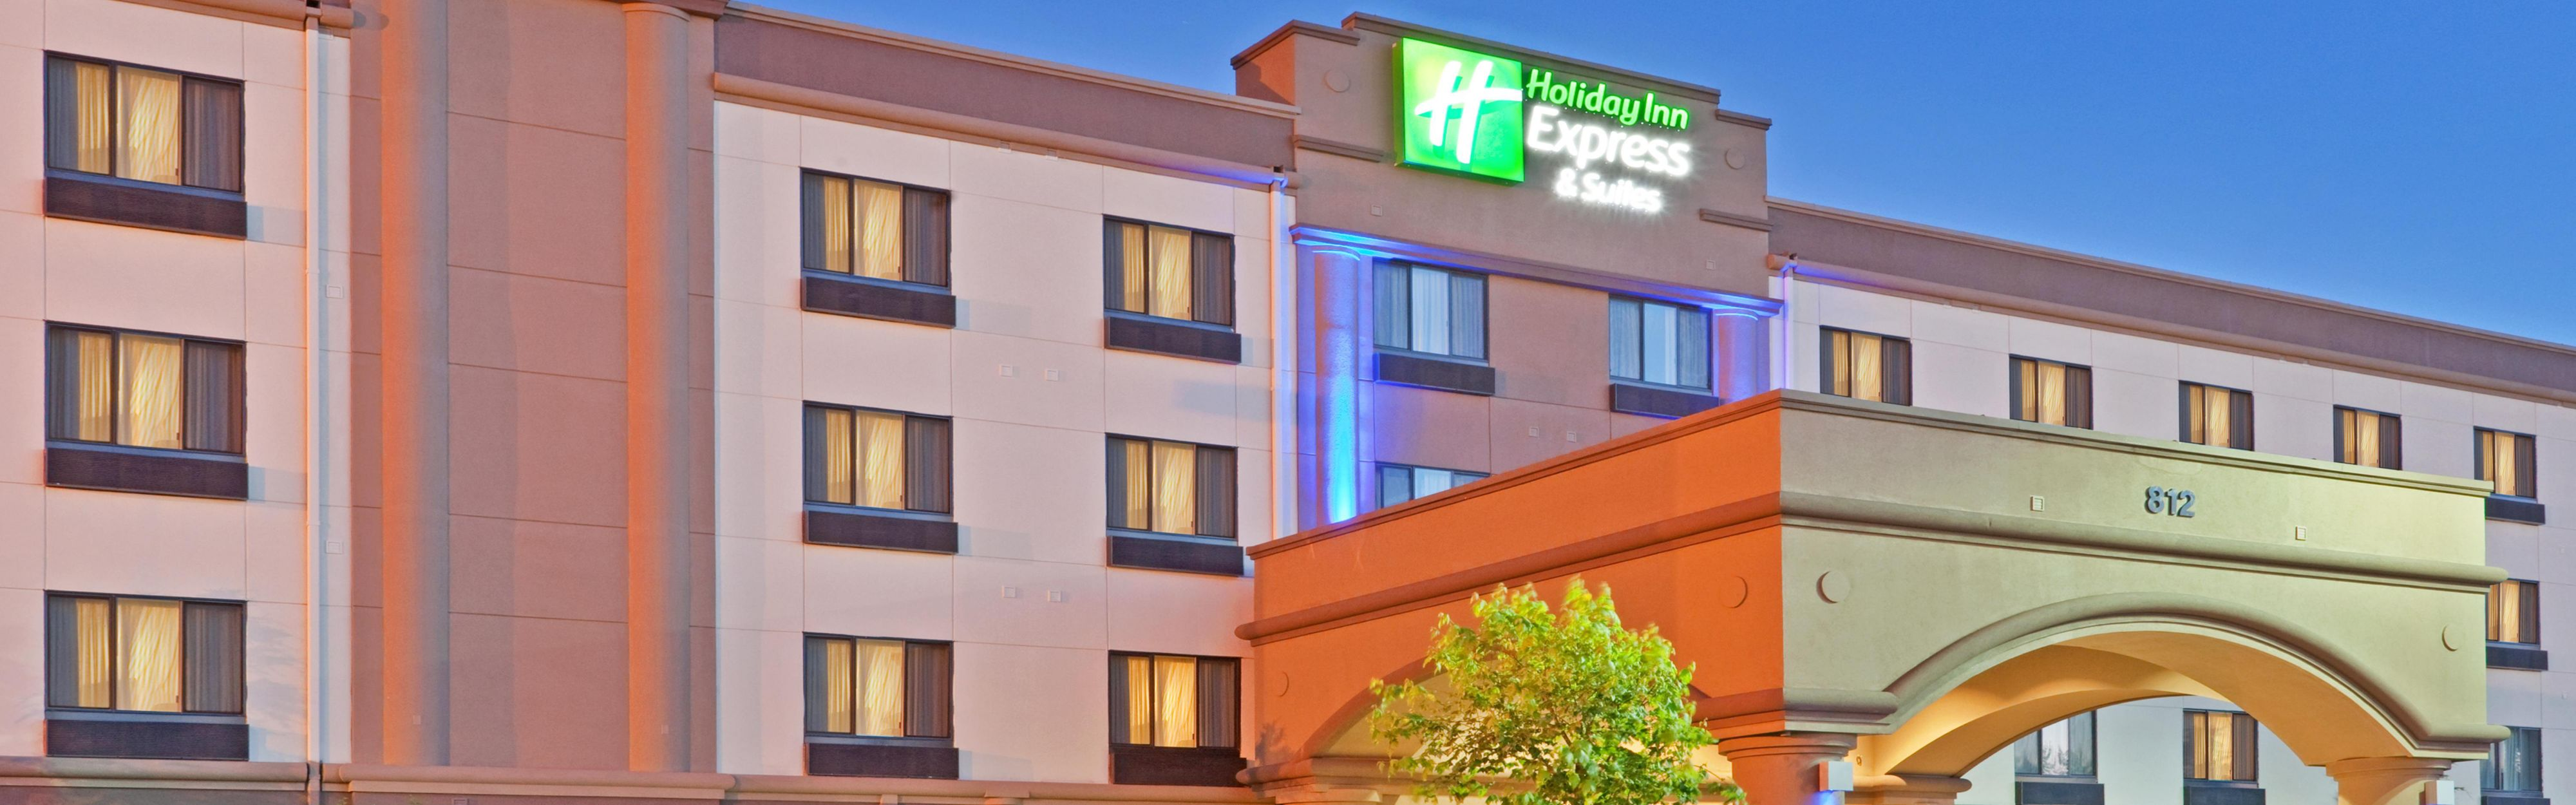 ... Holiday Inn Express Puyallup In The Evening ...